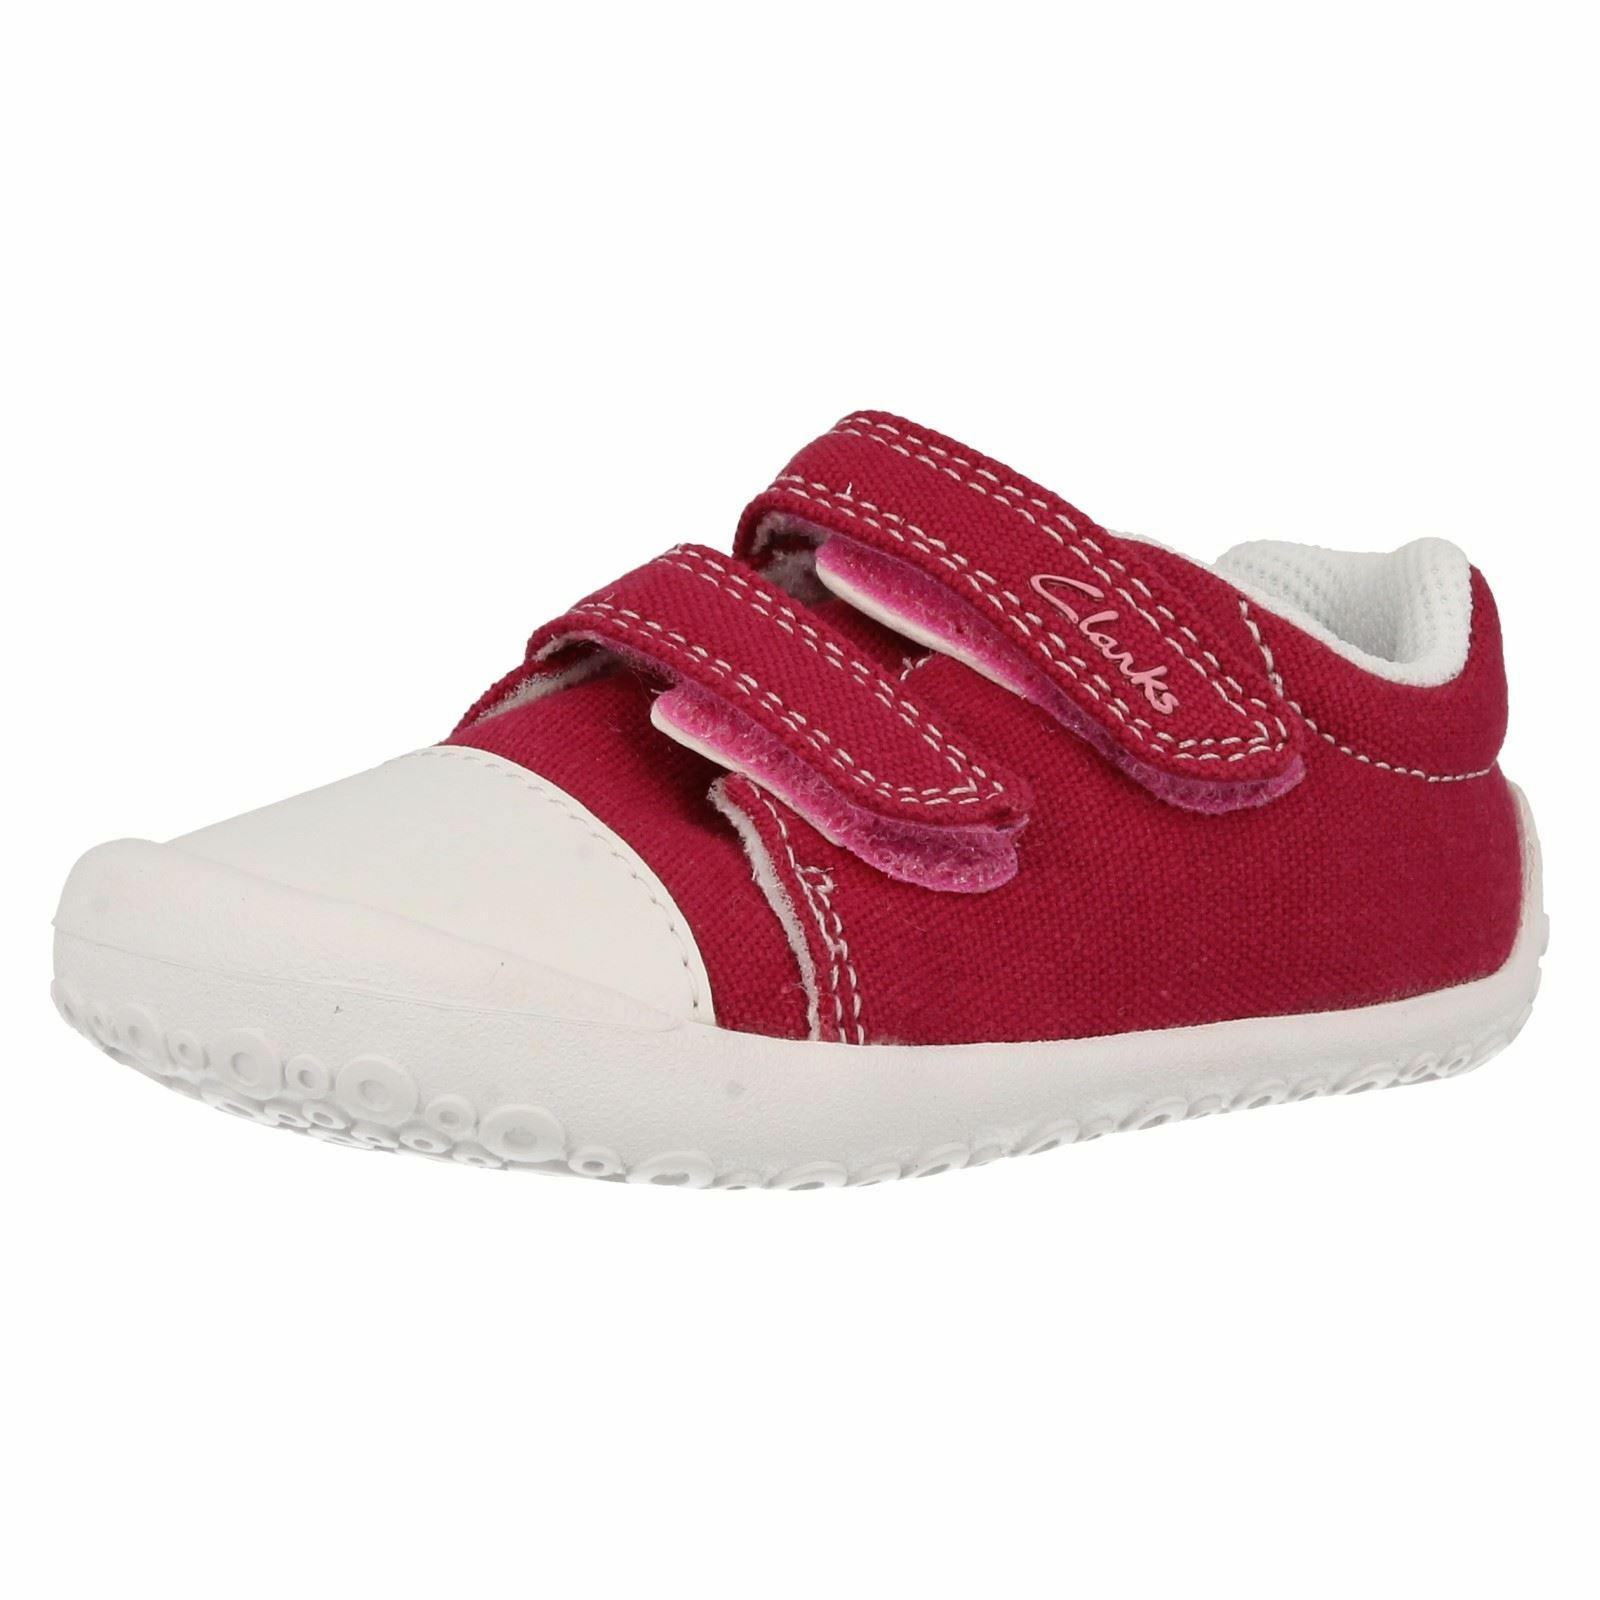 CLARKS GIRLS CANVAS SHOES KIRSTY HOT PINK FITTINGS AVAILABLE F&G TEXTILE UPPER